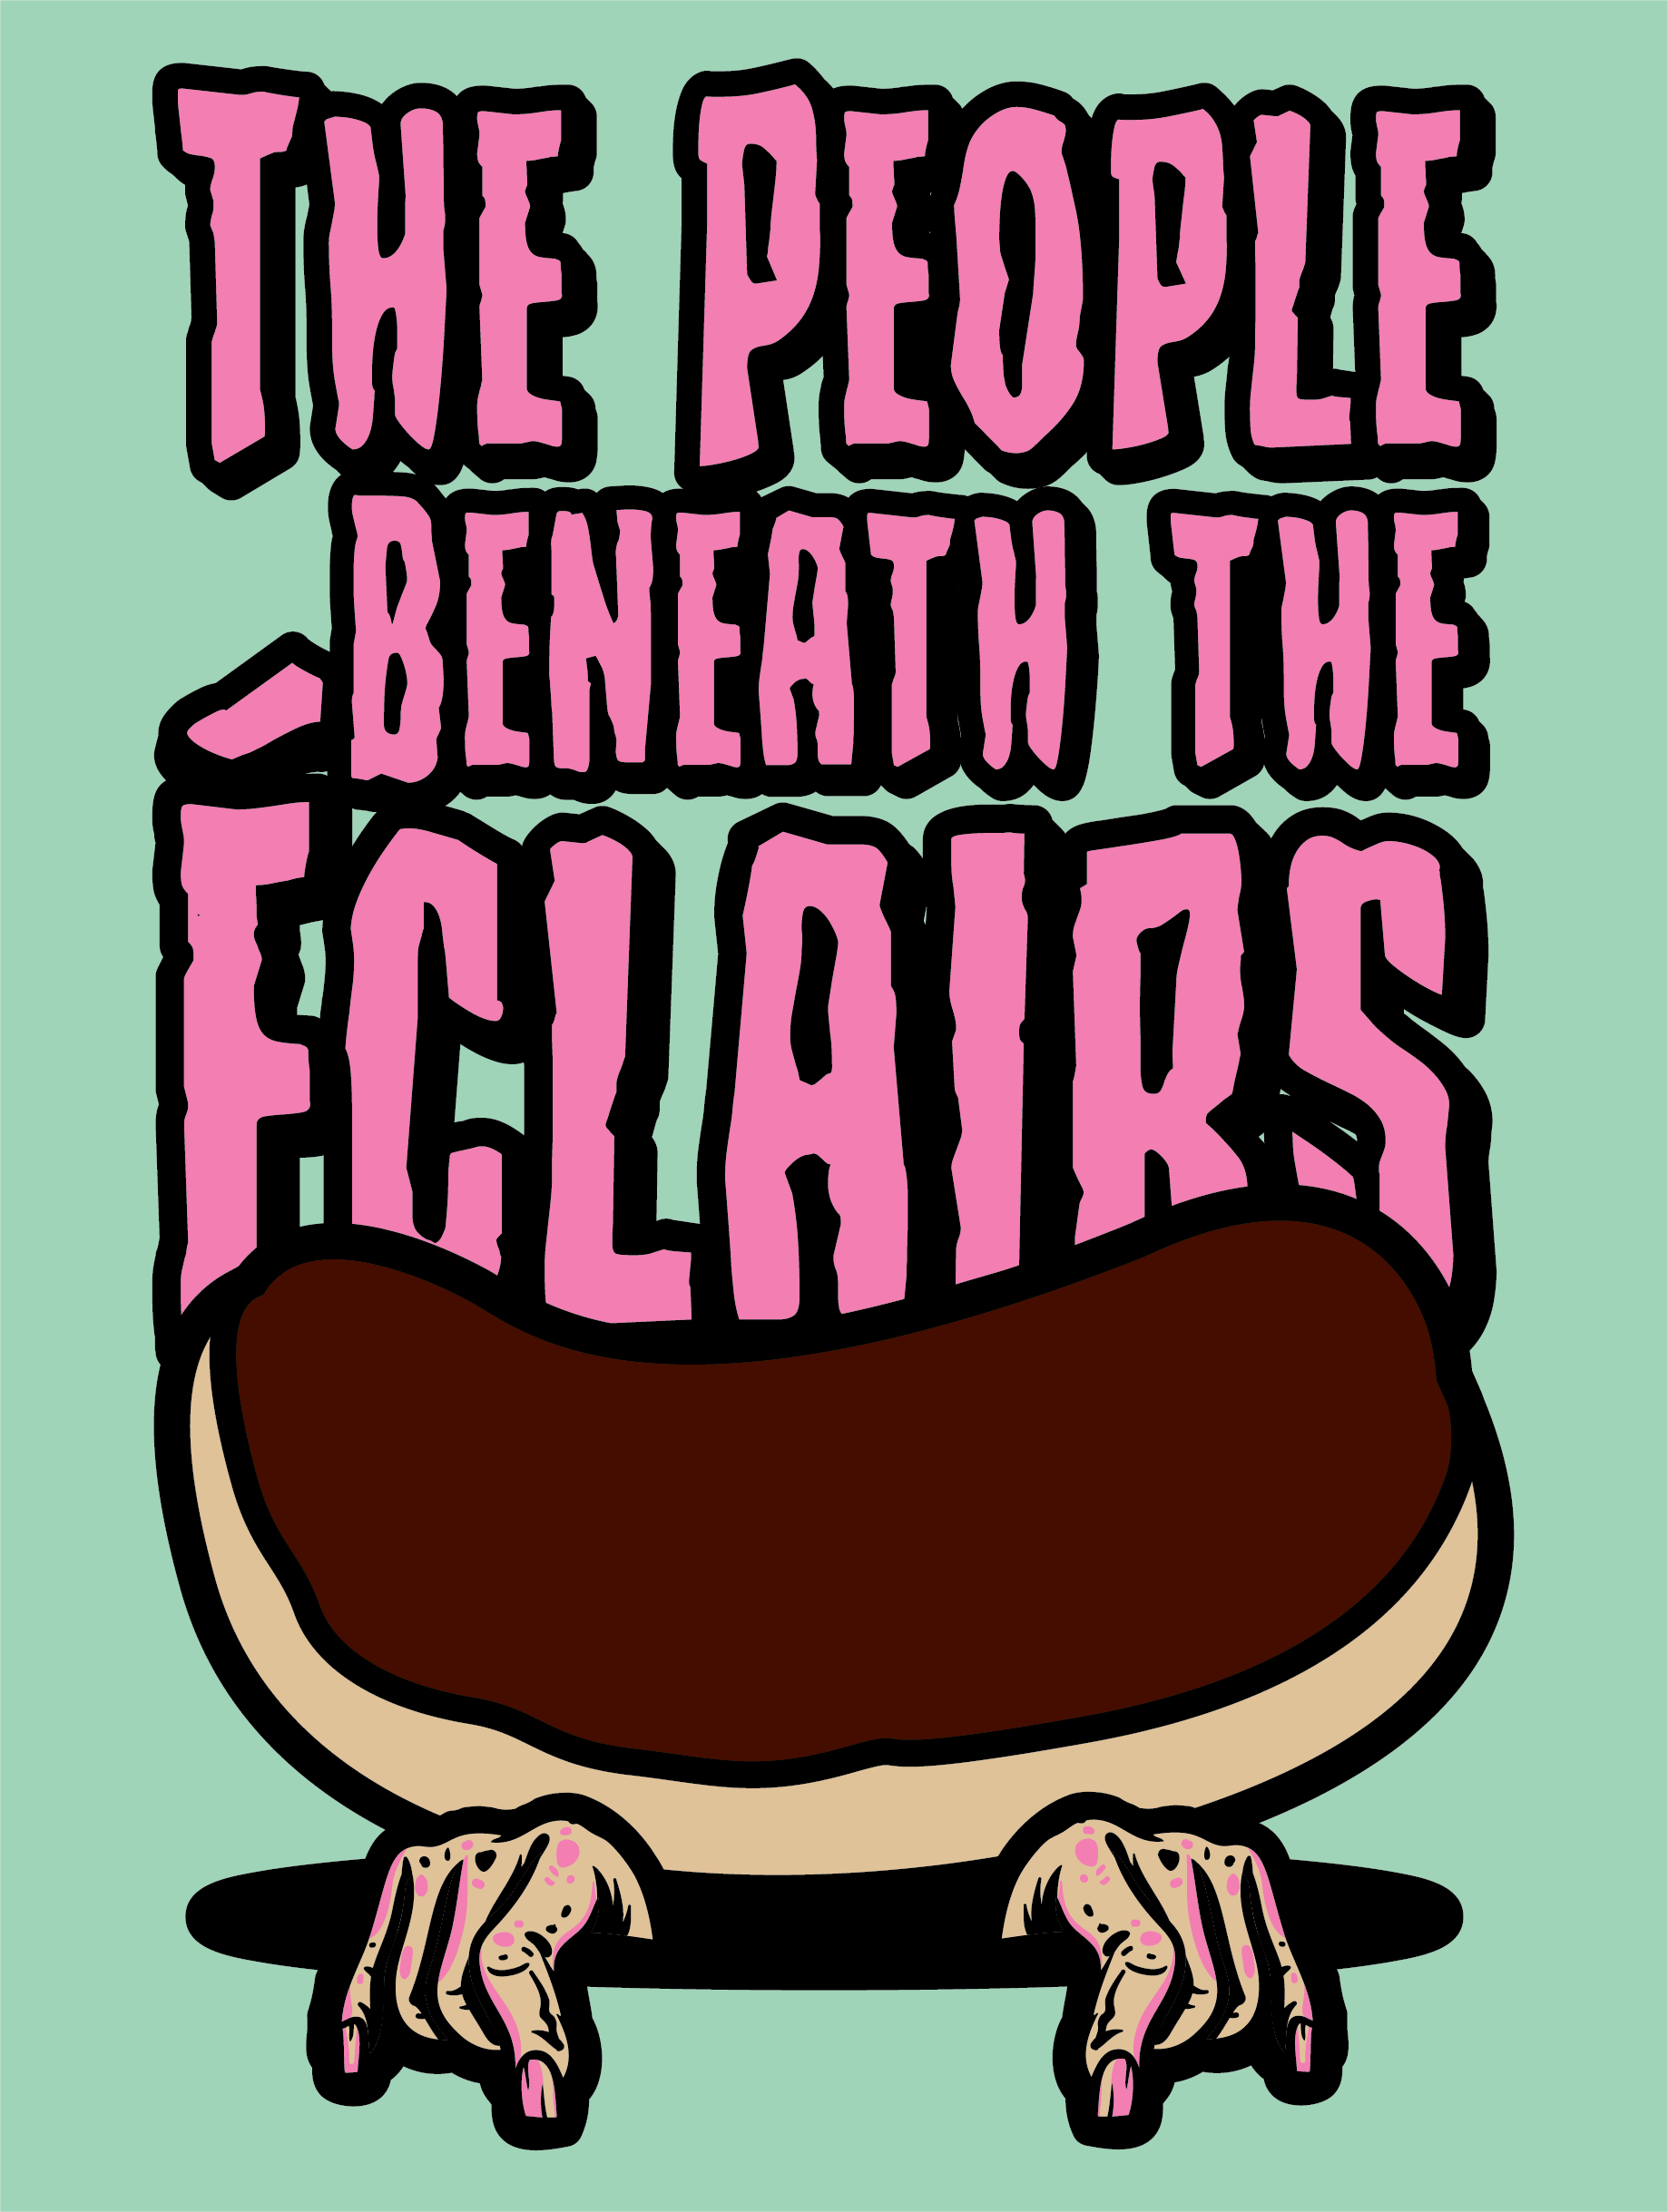 The_People_Beneath_The_Éclairs-01.png